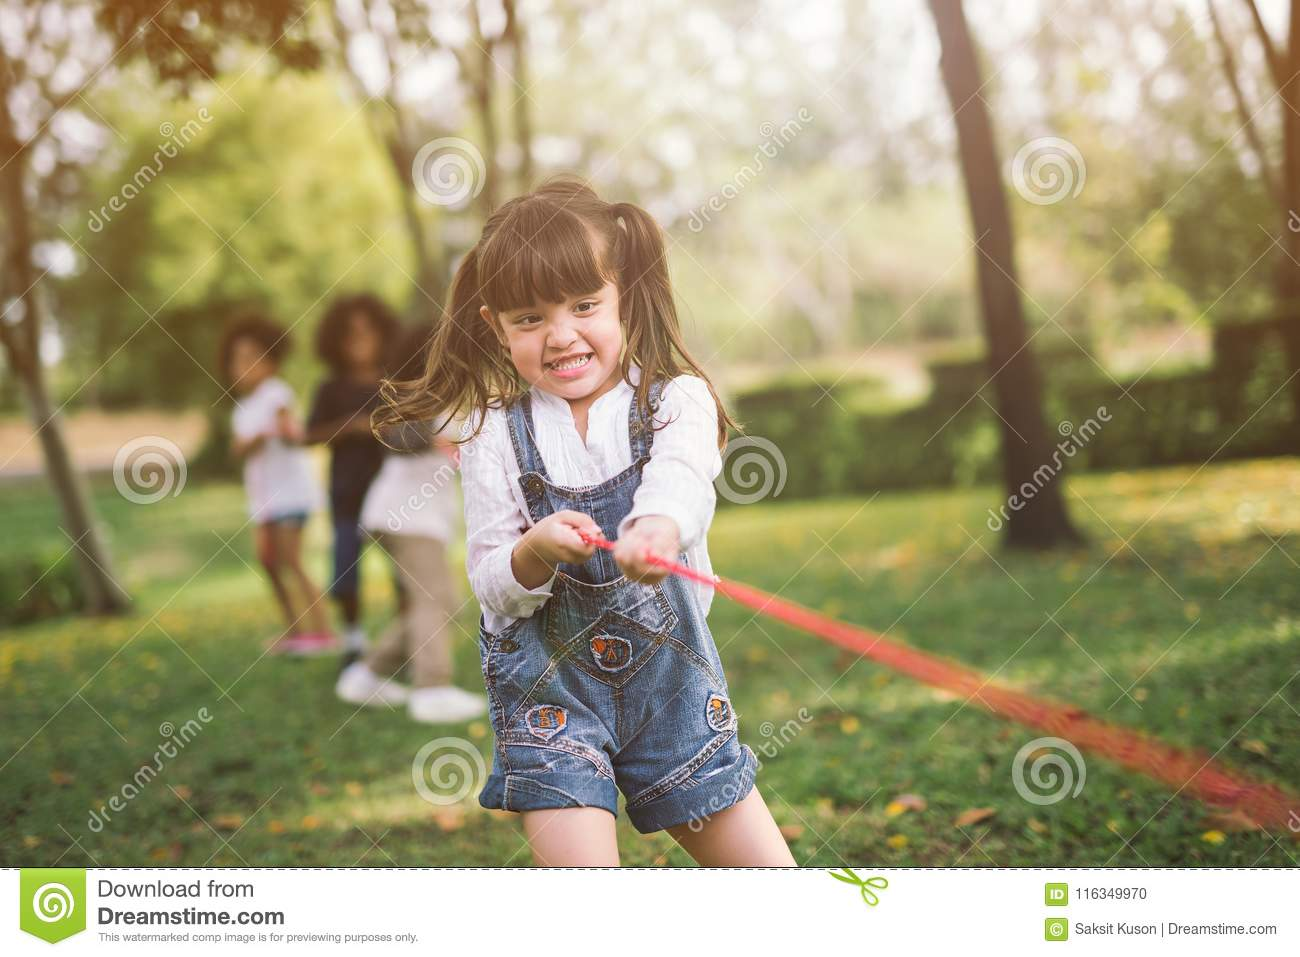 Girl children playing tug of war at the park.